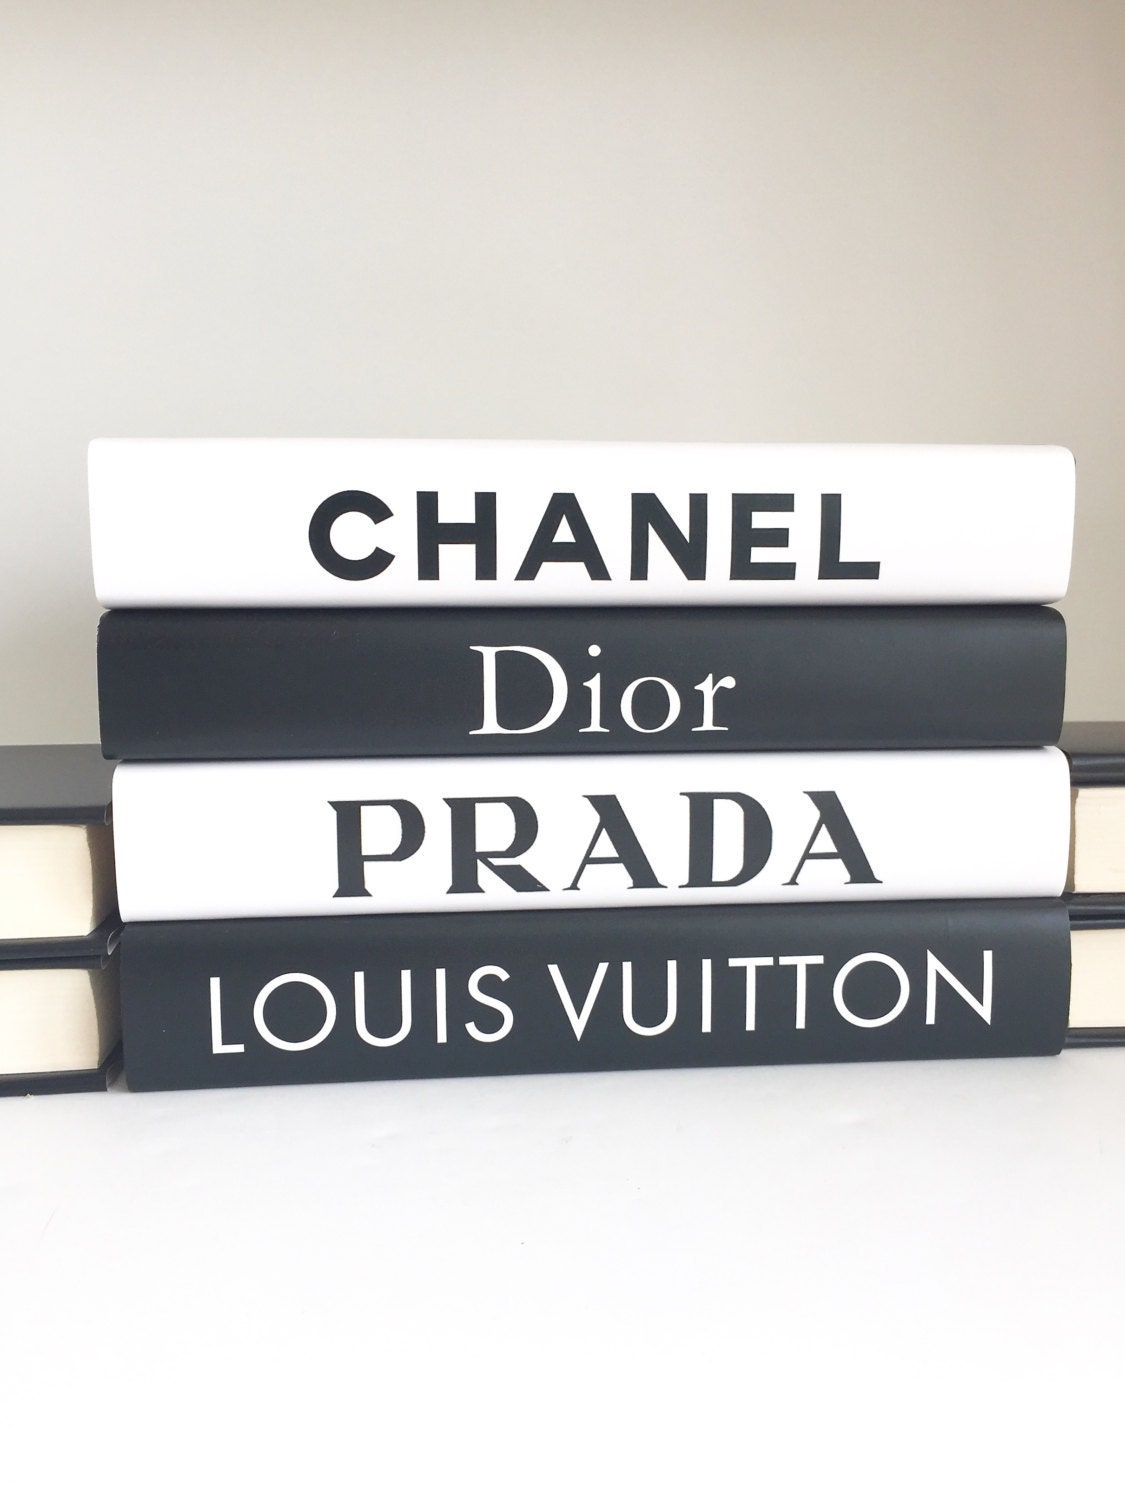 Chanel Book Cover Printable : Fashion designer inspired books chanel dior prada louis